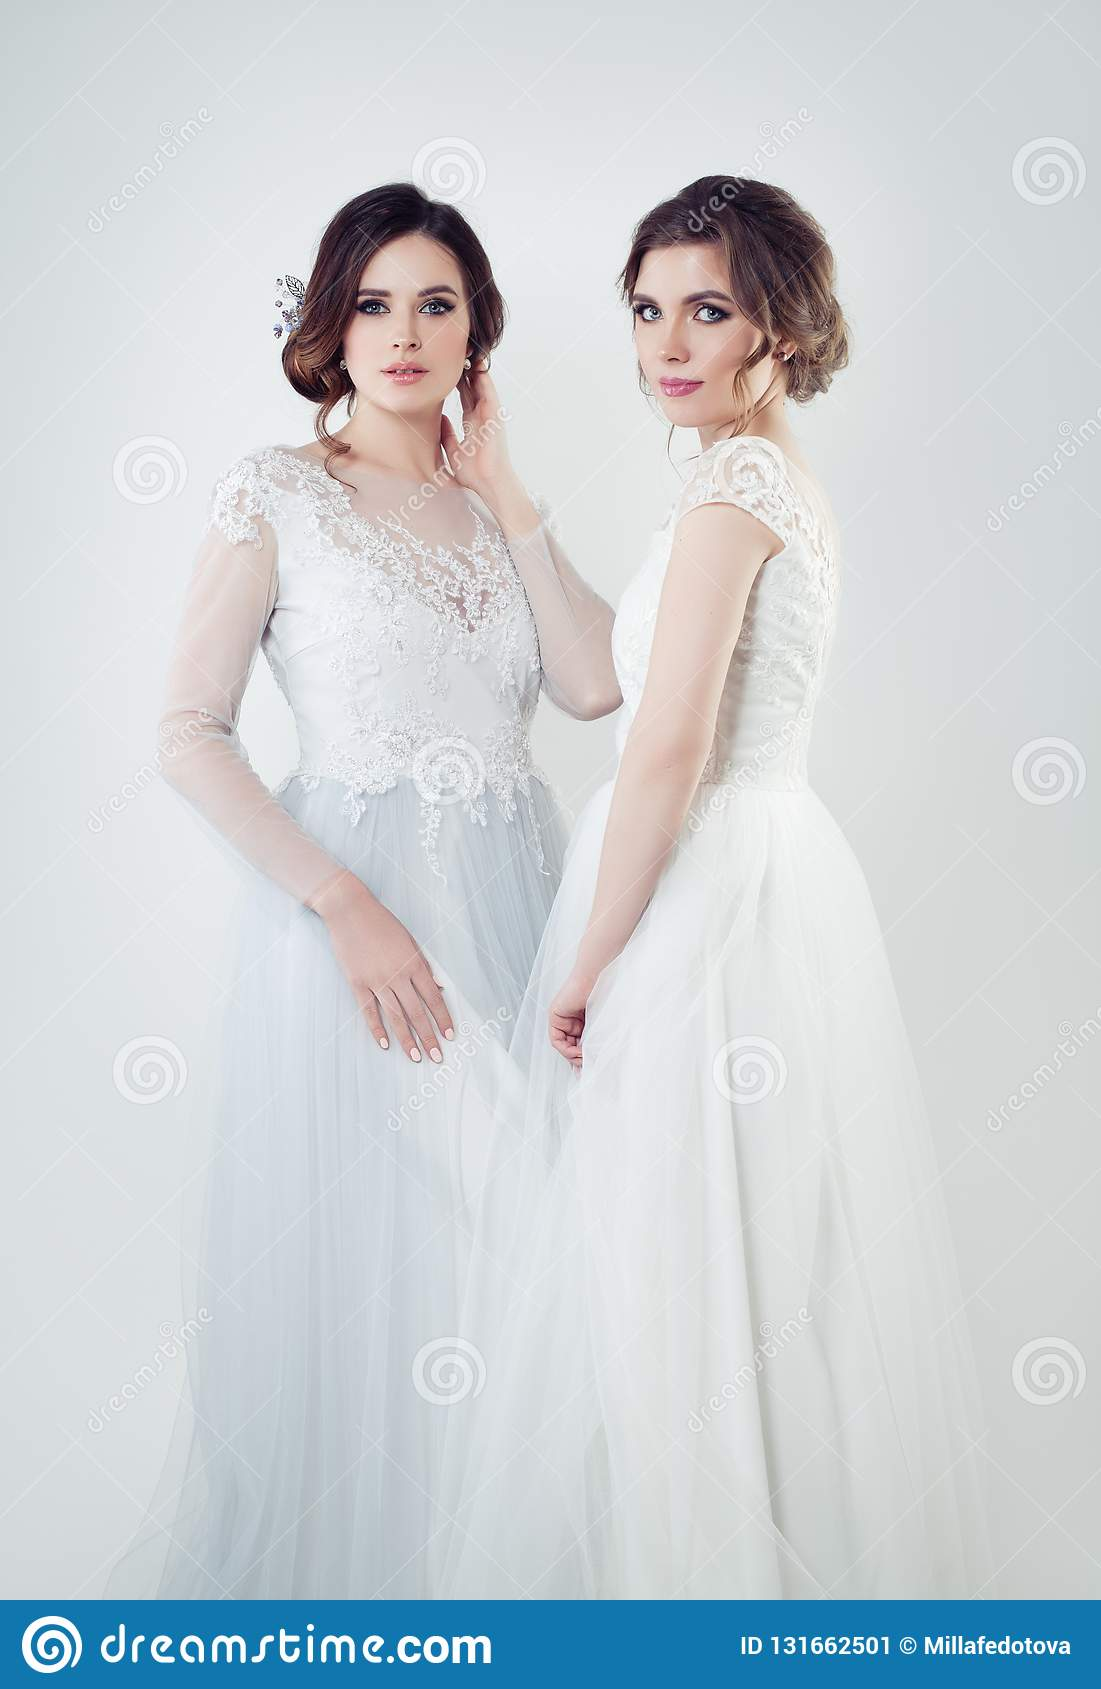 8f965c33f Two glamorous bride portrait. Perfect women in white wedding dress portrait.